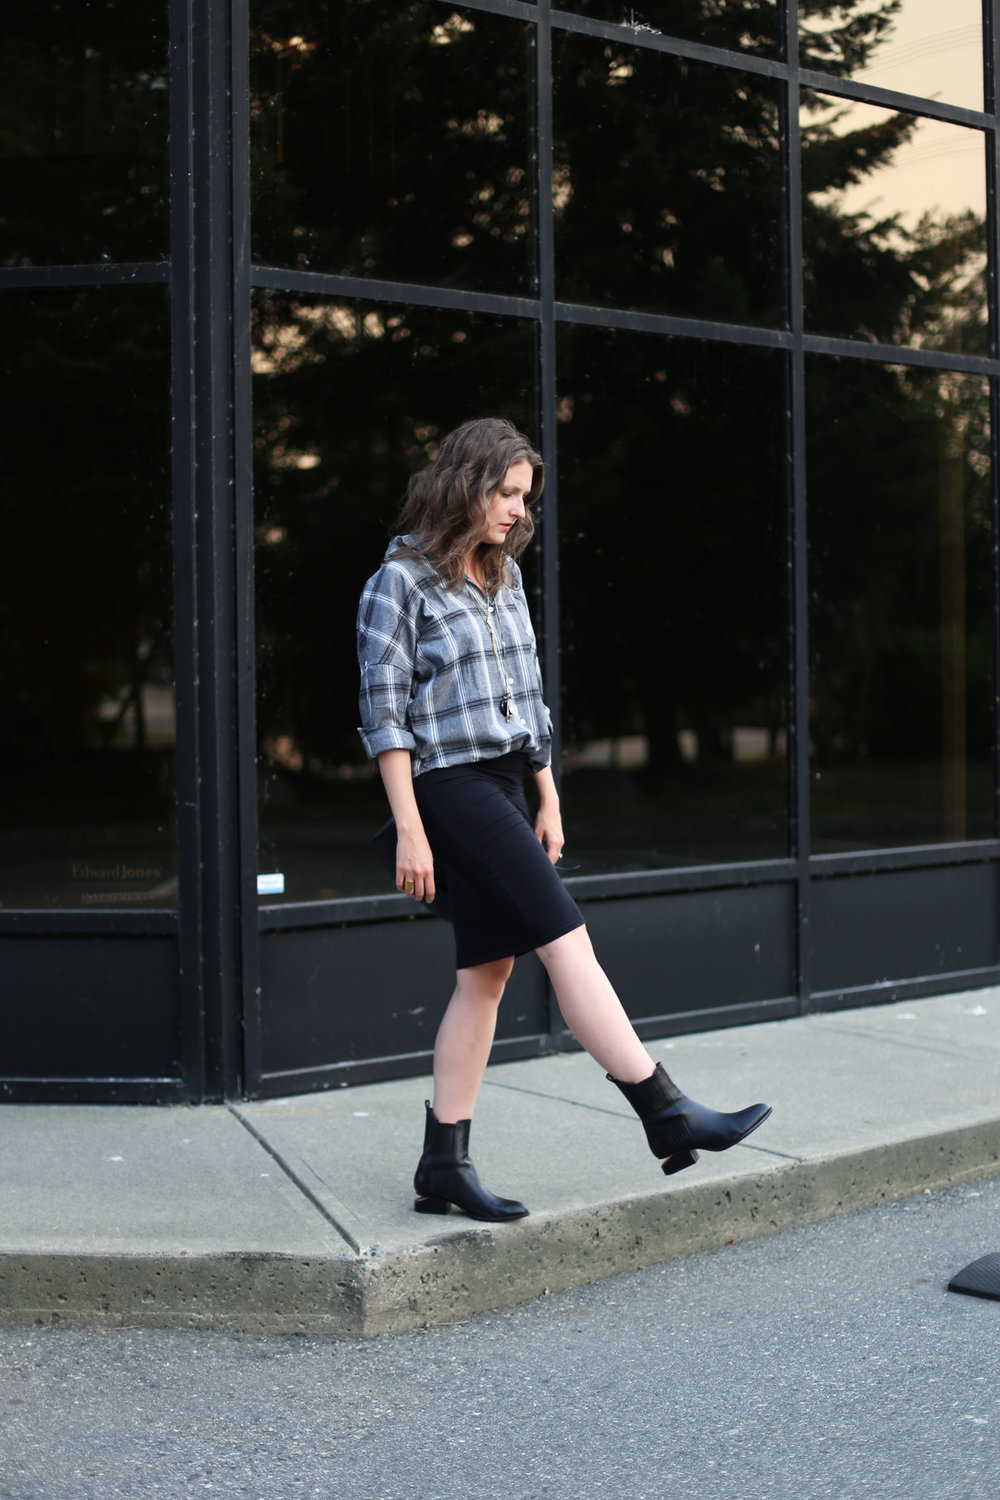 minimalist outfit ideas: black bag, black skirt, alexander wang boots, and a plaid shirt.